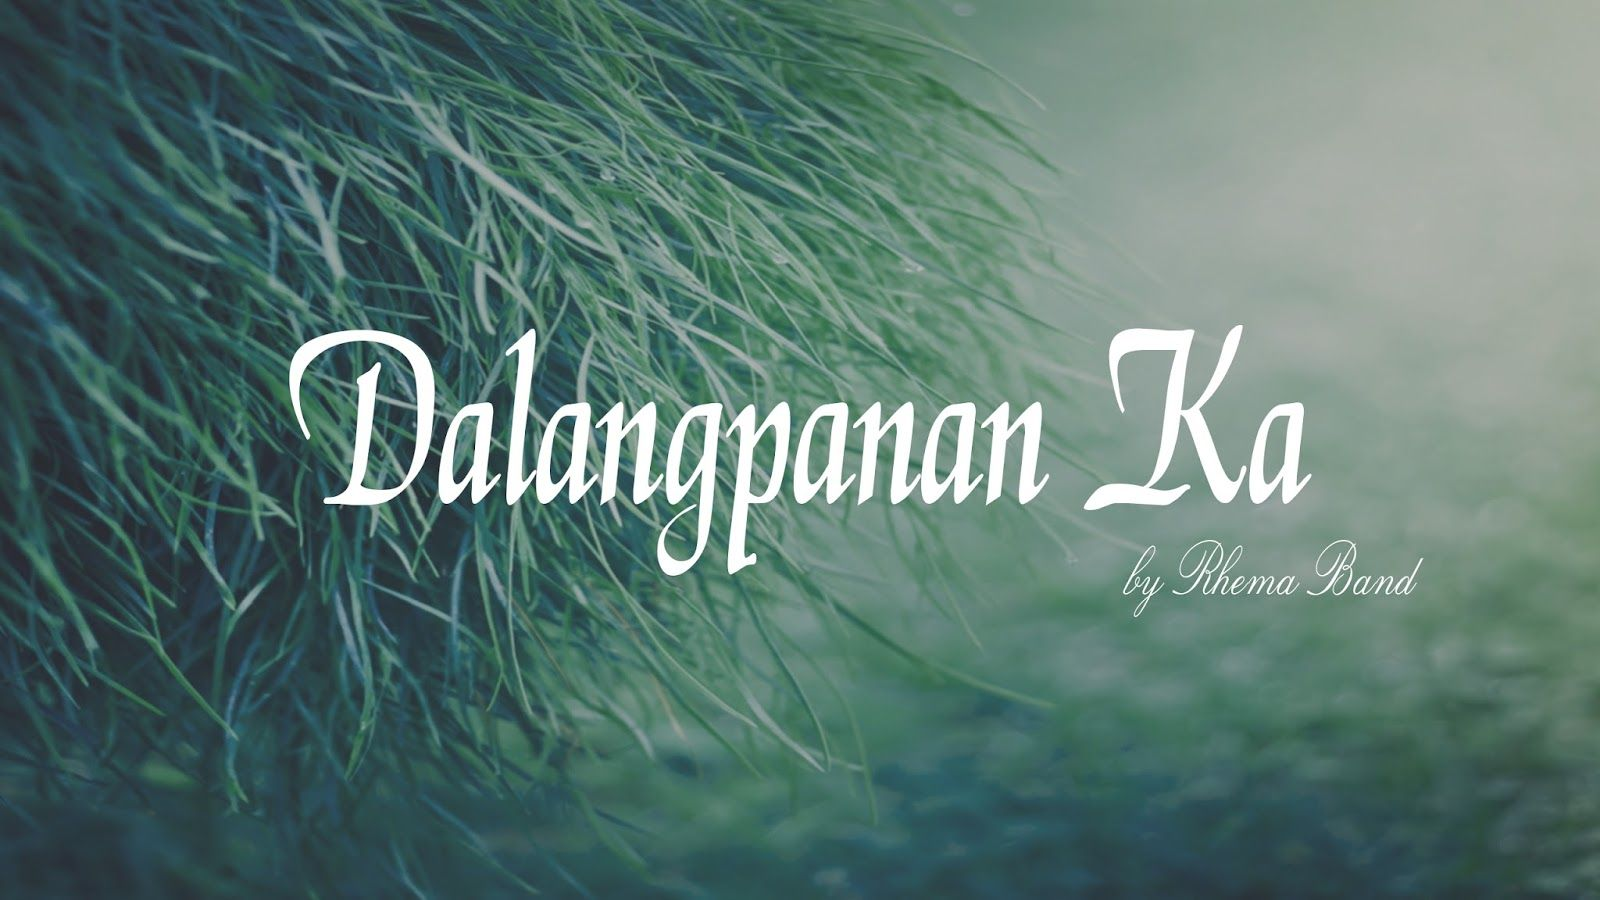 Dalangpanan ka by rhema band guitar chords and guitars dalangpanan ka by rhema band hexwebz Choice Image